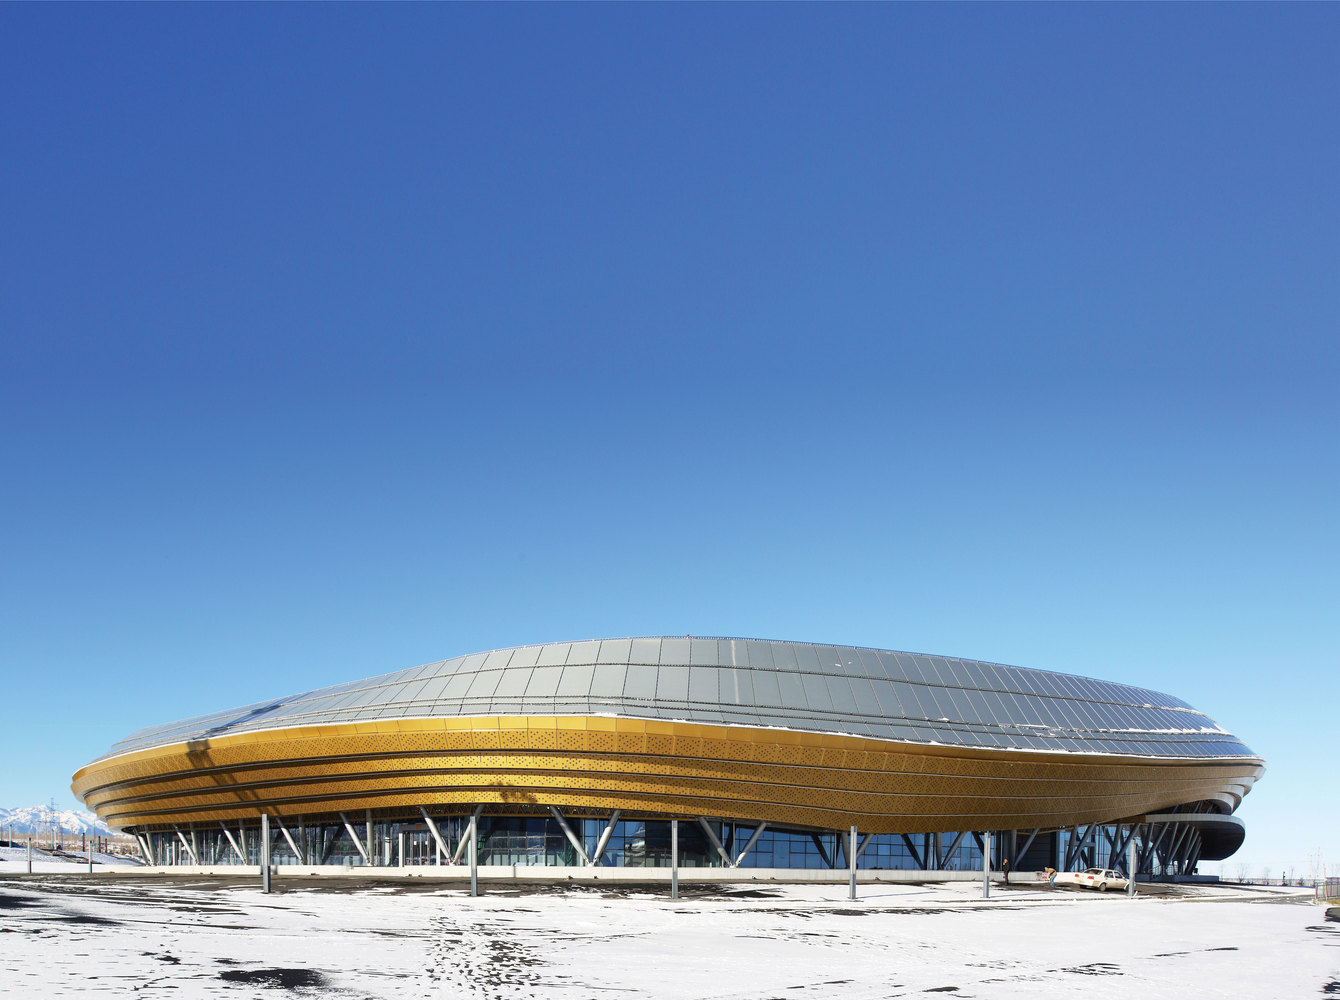 Ice Sports Center Of The 13th China National Winter Games,© Wei Shuxiang